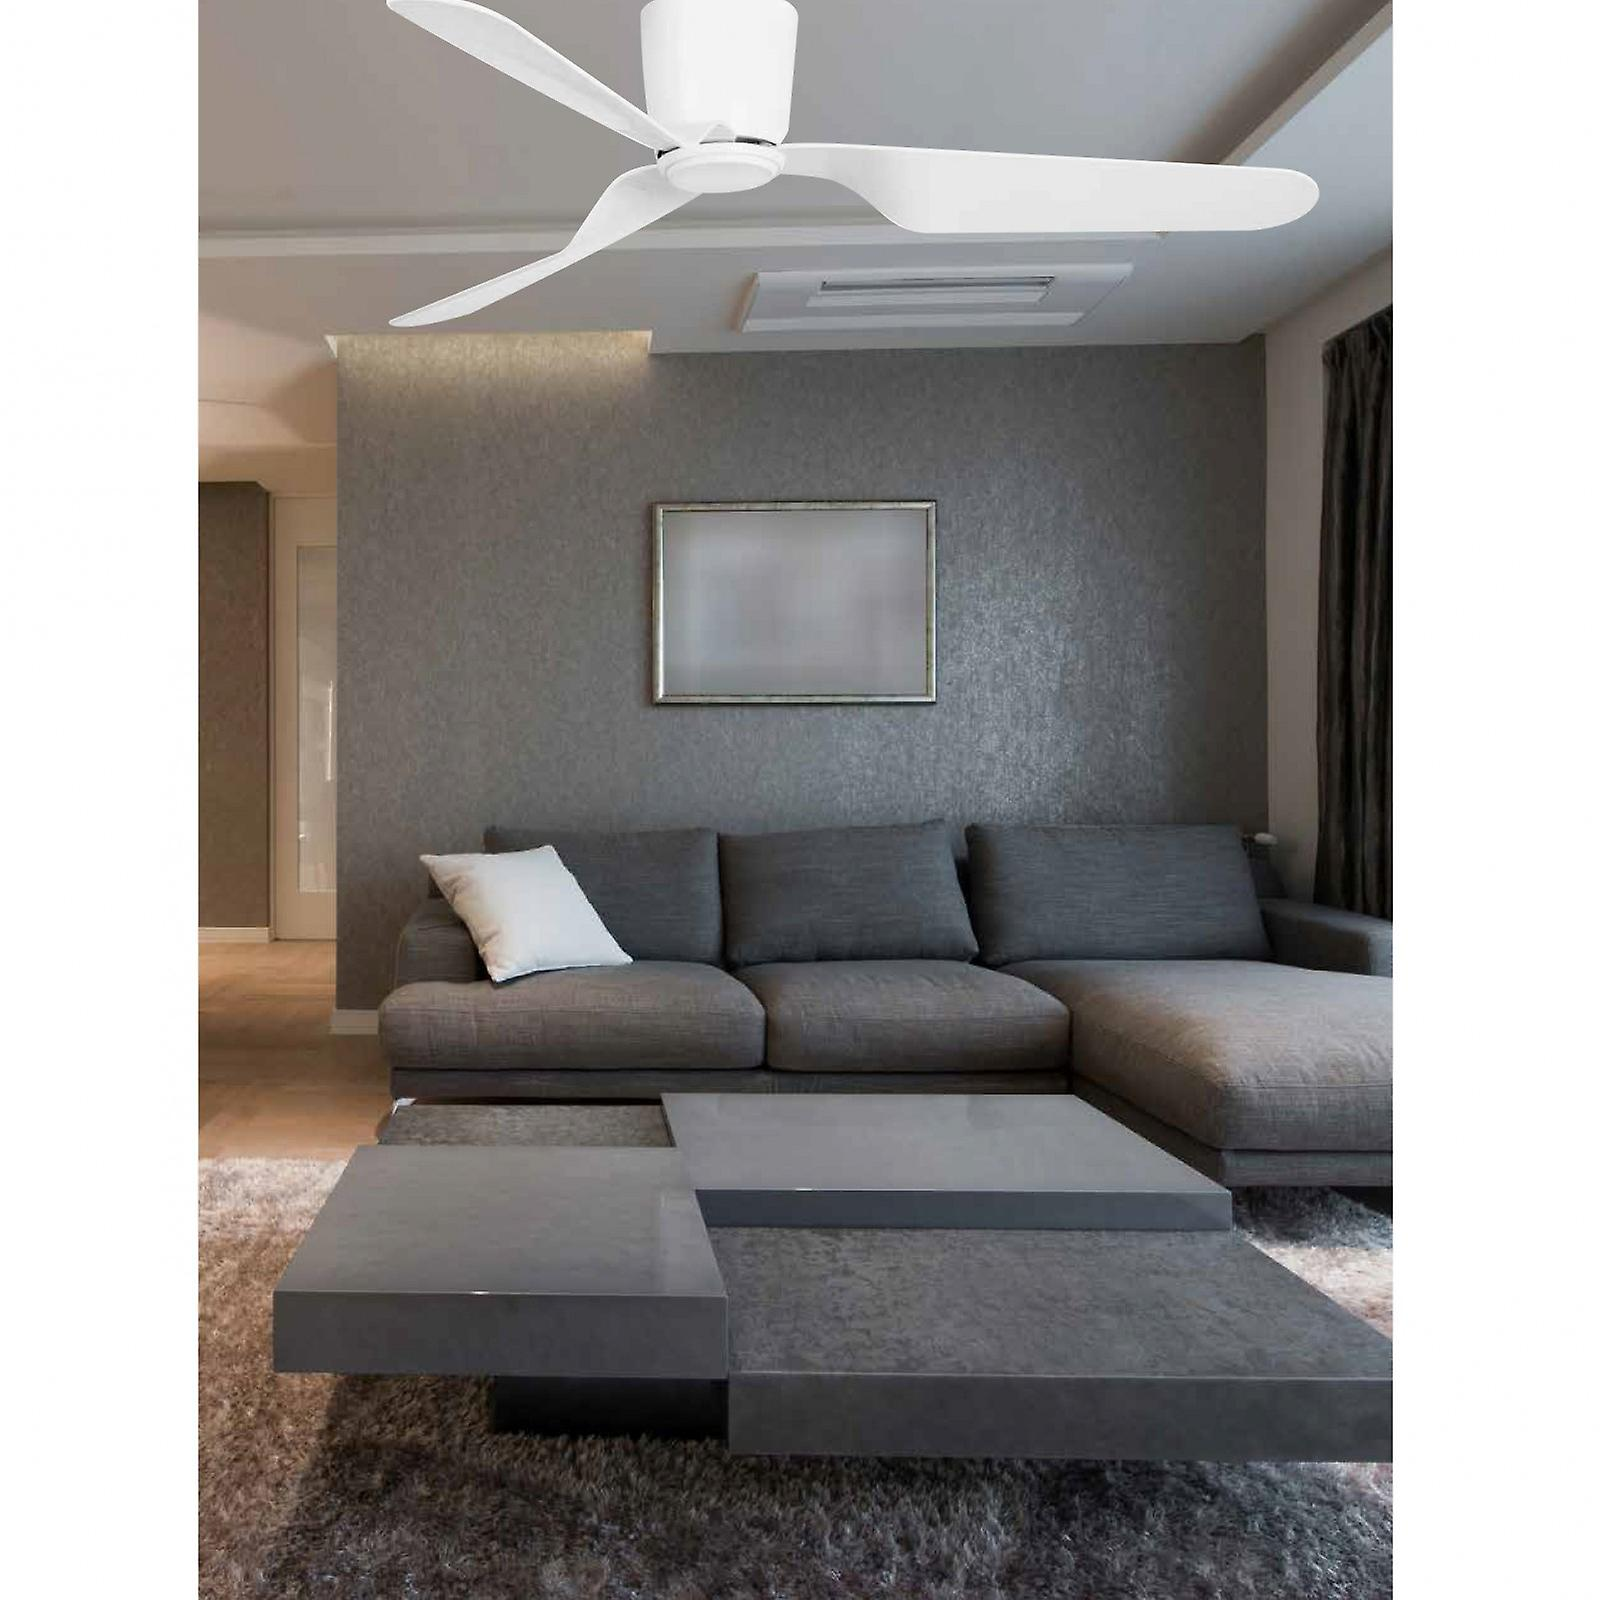 DC ceiling fan Pemba White with Remote Control